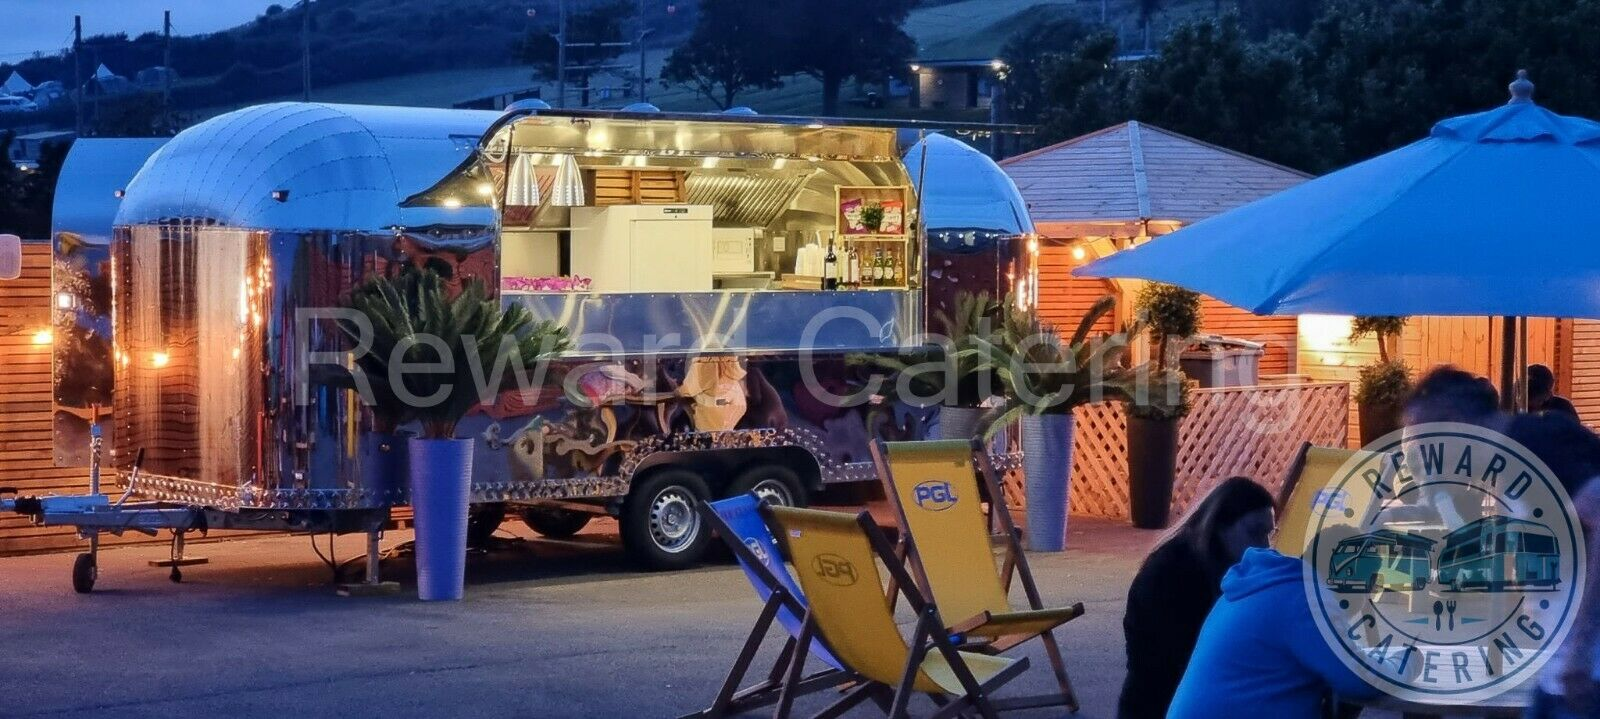 2021 Airstream Catering trailer Burgers, Coffees ,Gin Prosecco Pizza